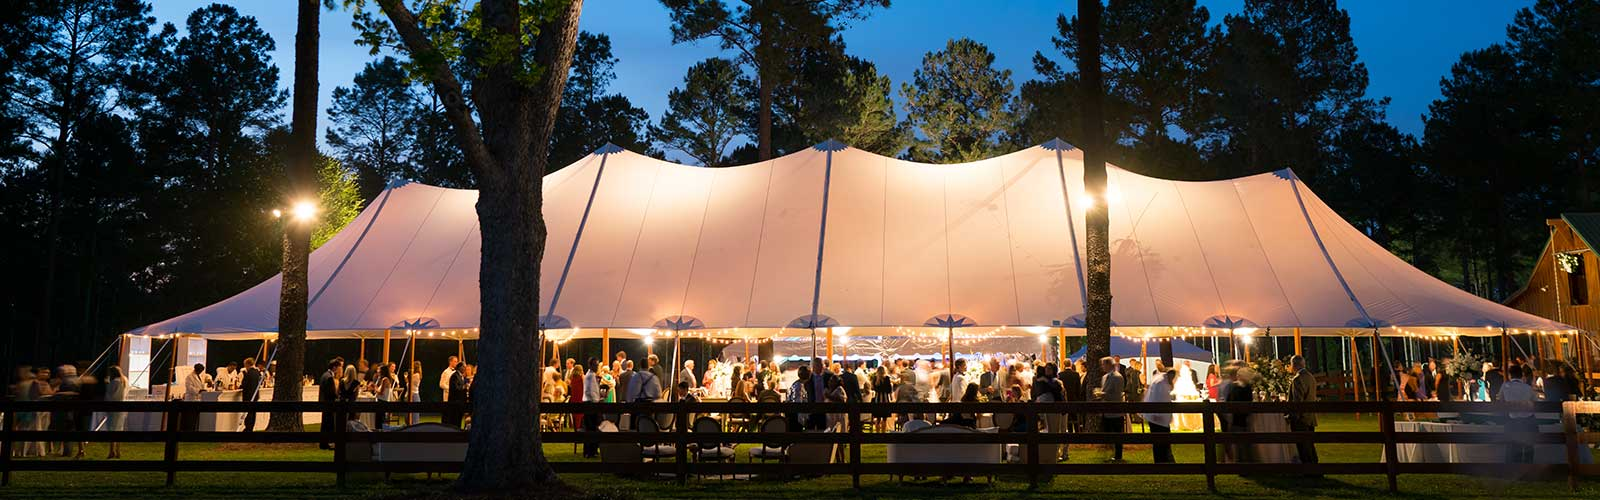 Party rentals in Mobile AL and the Greater Gulf Coast